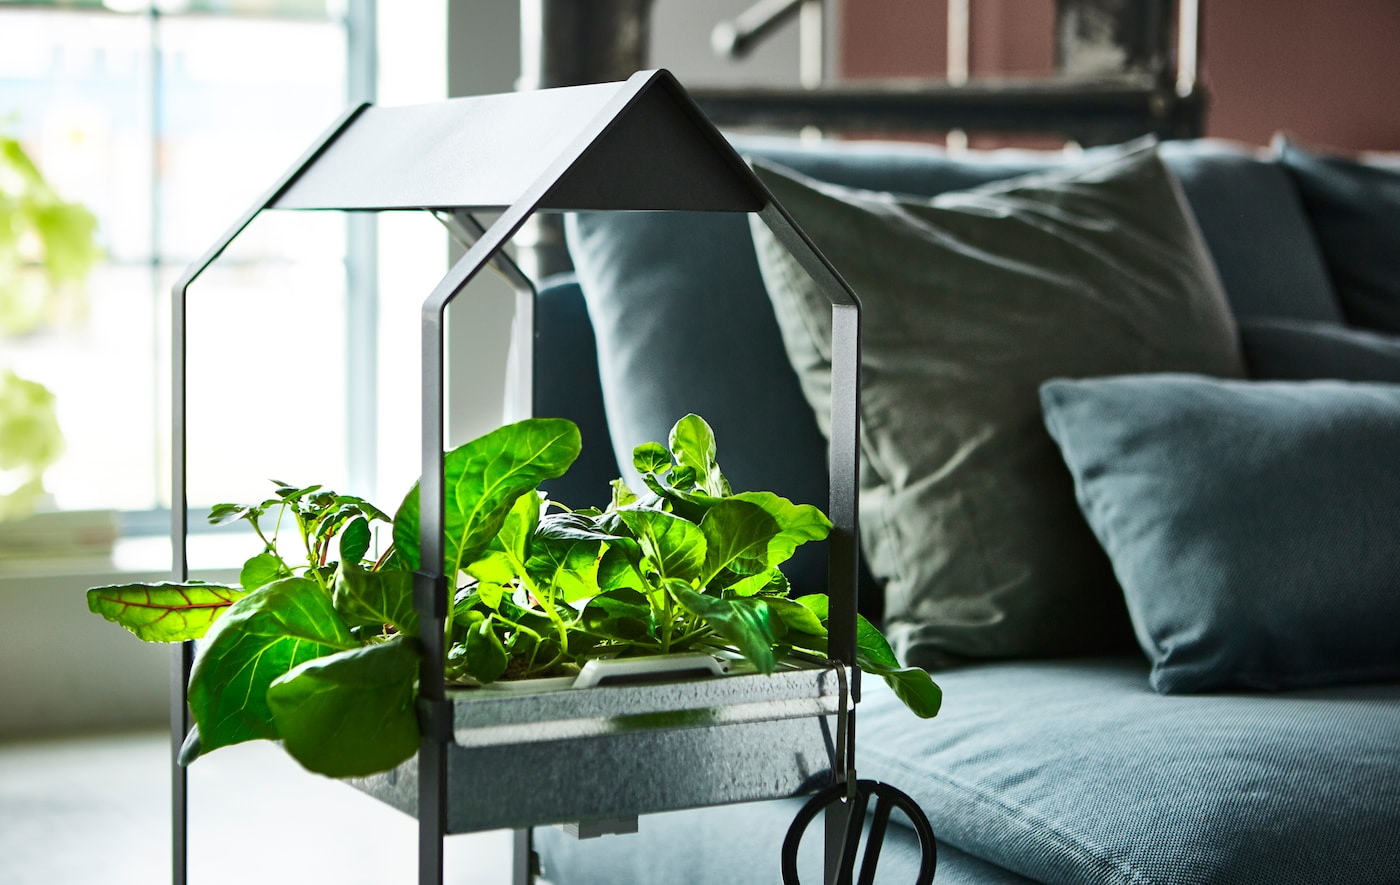 A plant stand filled with herbs and greens sits in a living room next to a sofa.